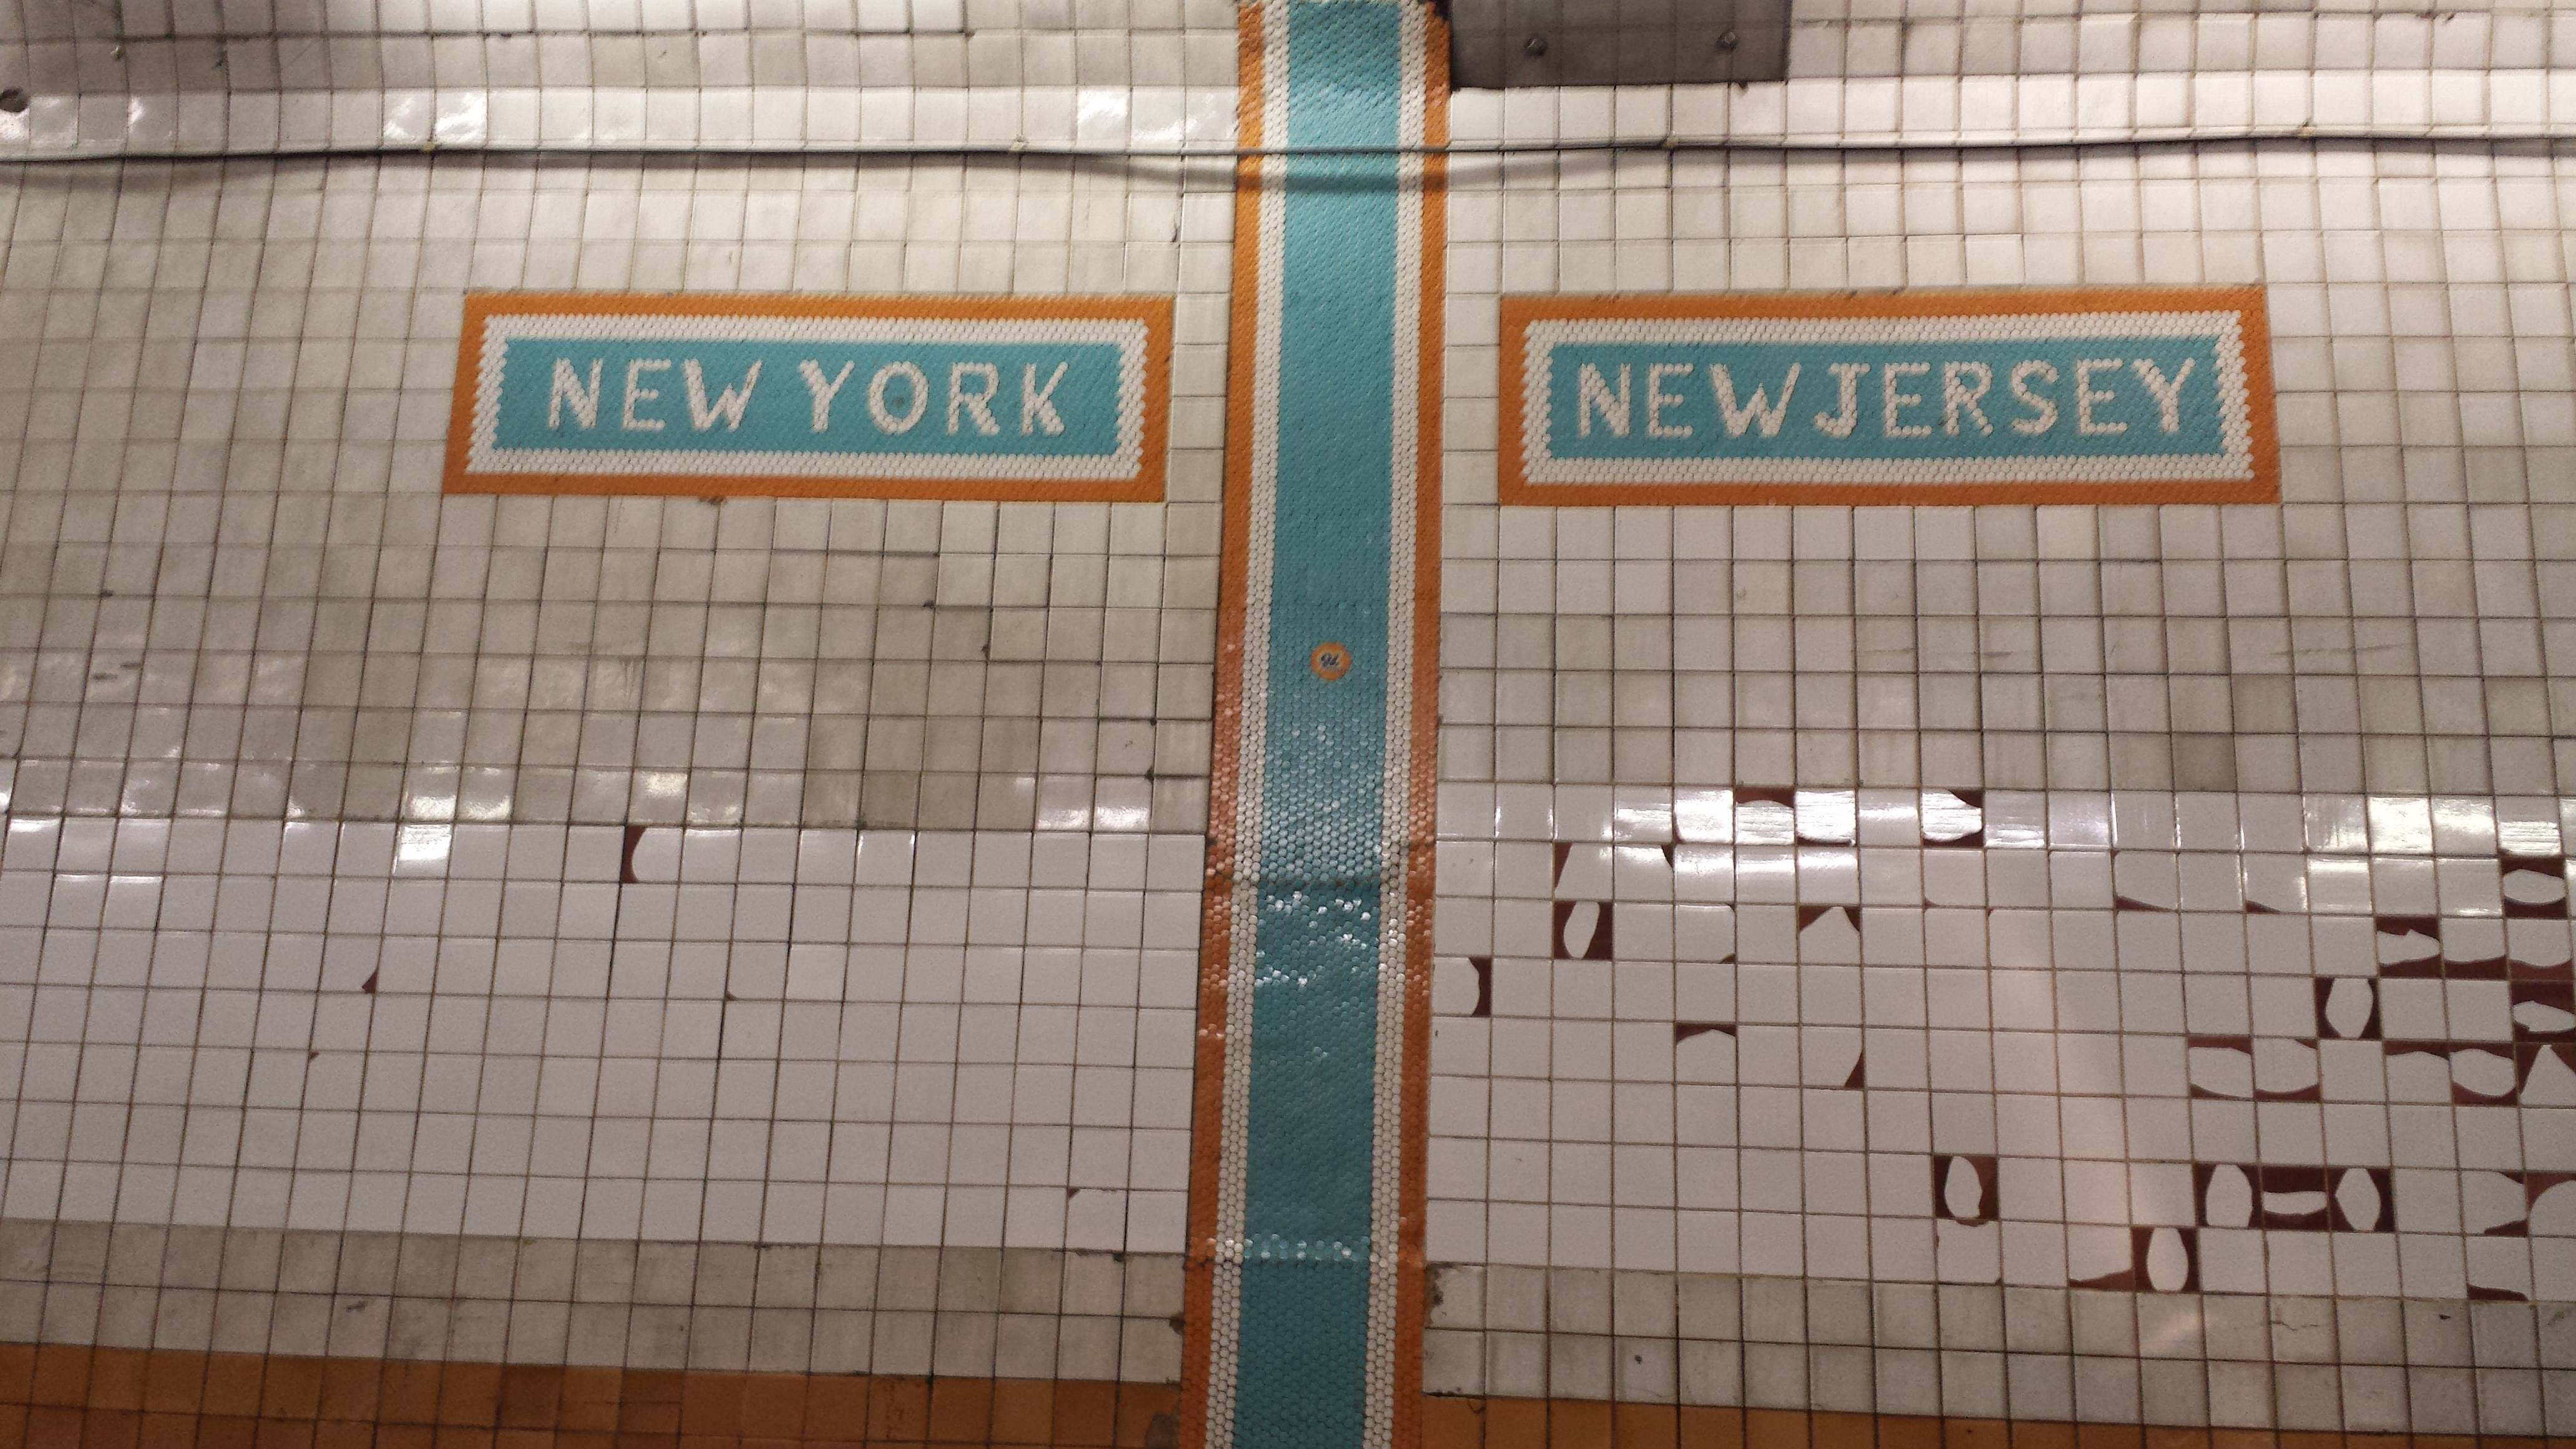 Vice Versa Nyc >> The Edge of New York, the Border Between Manhattan and ...